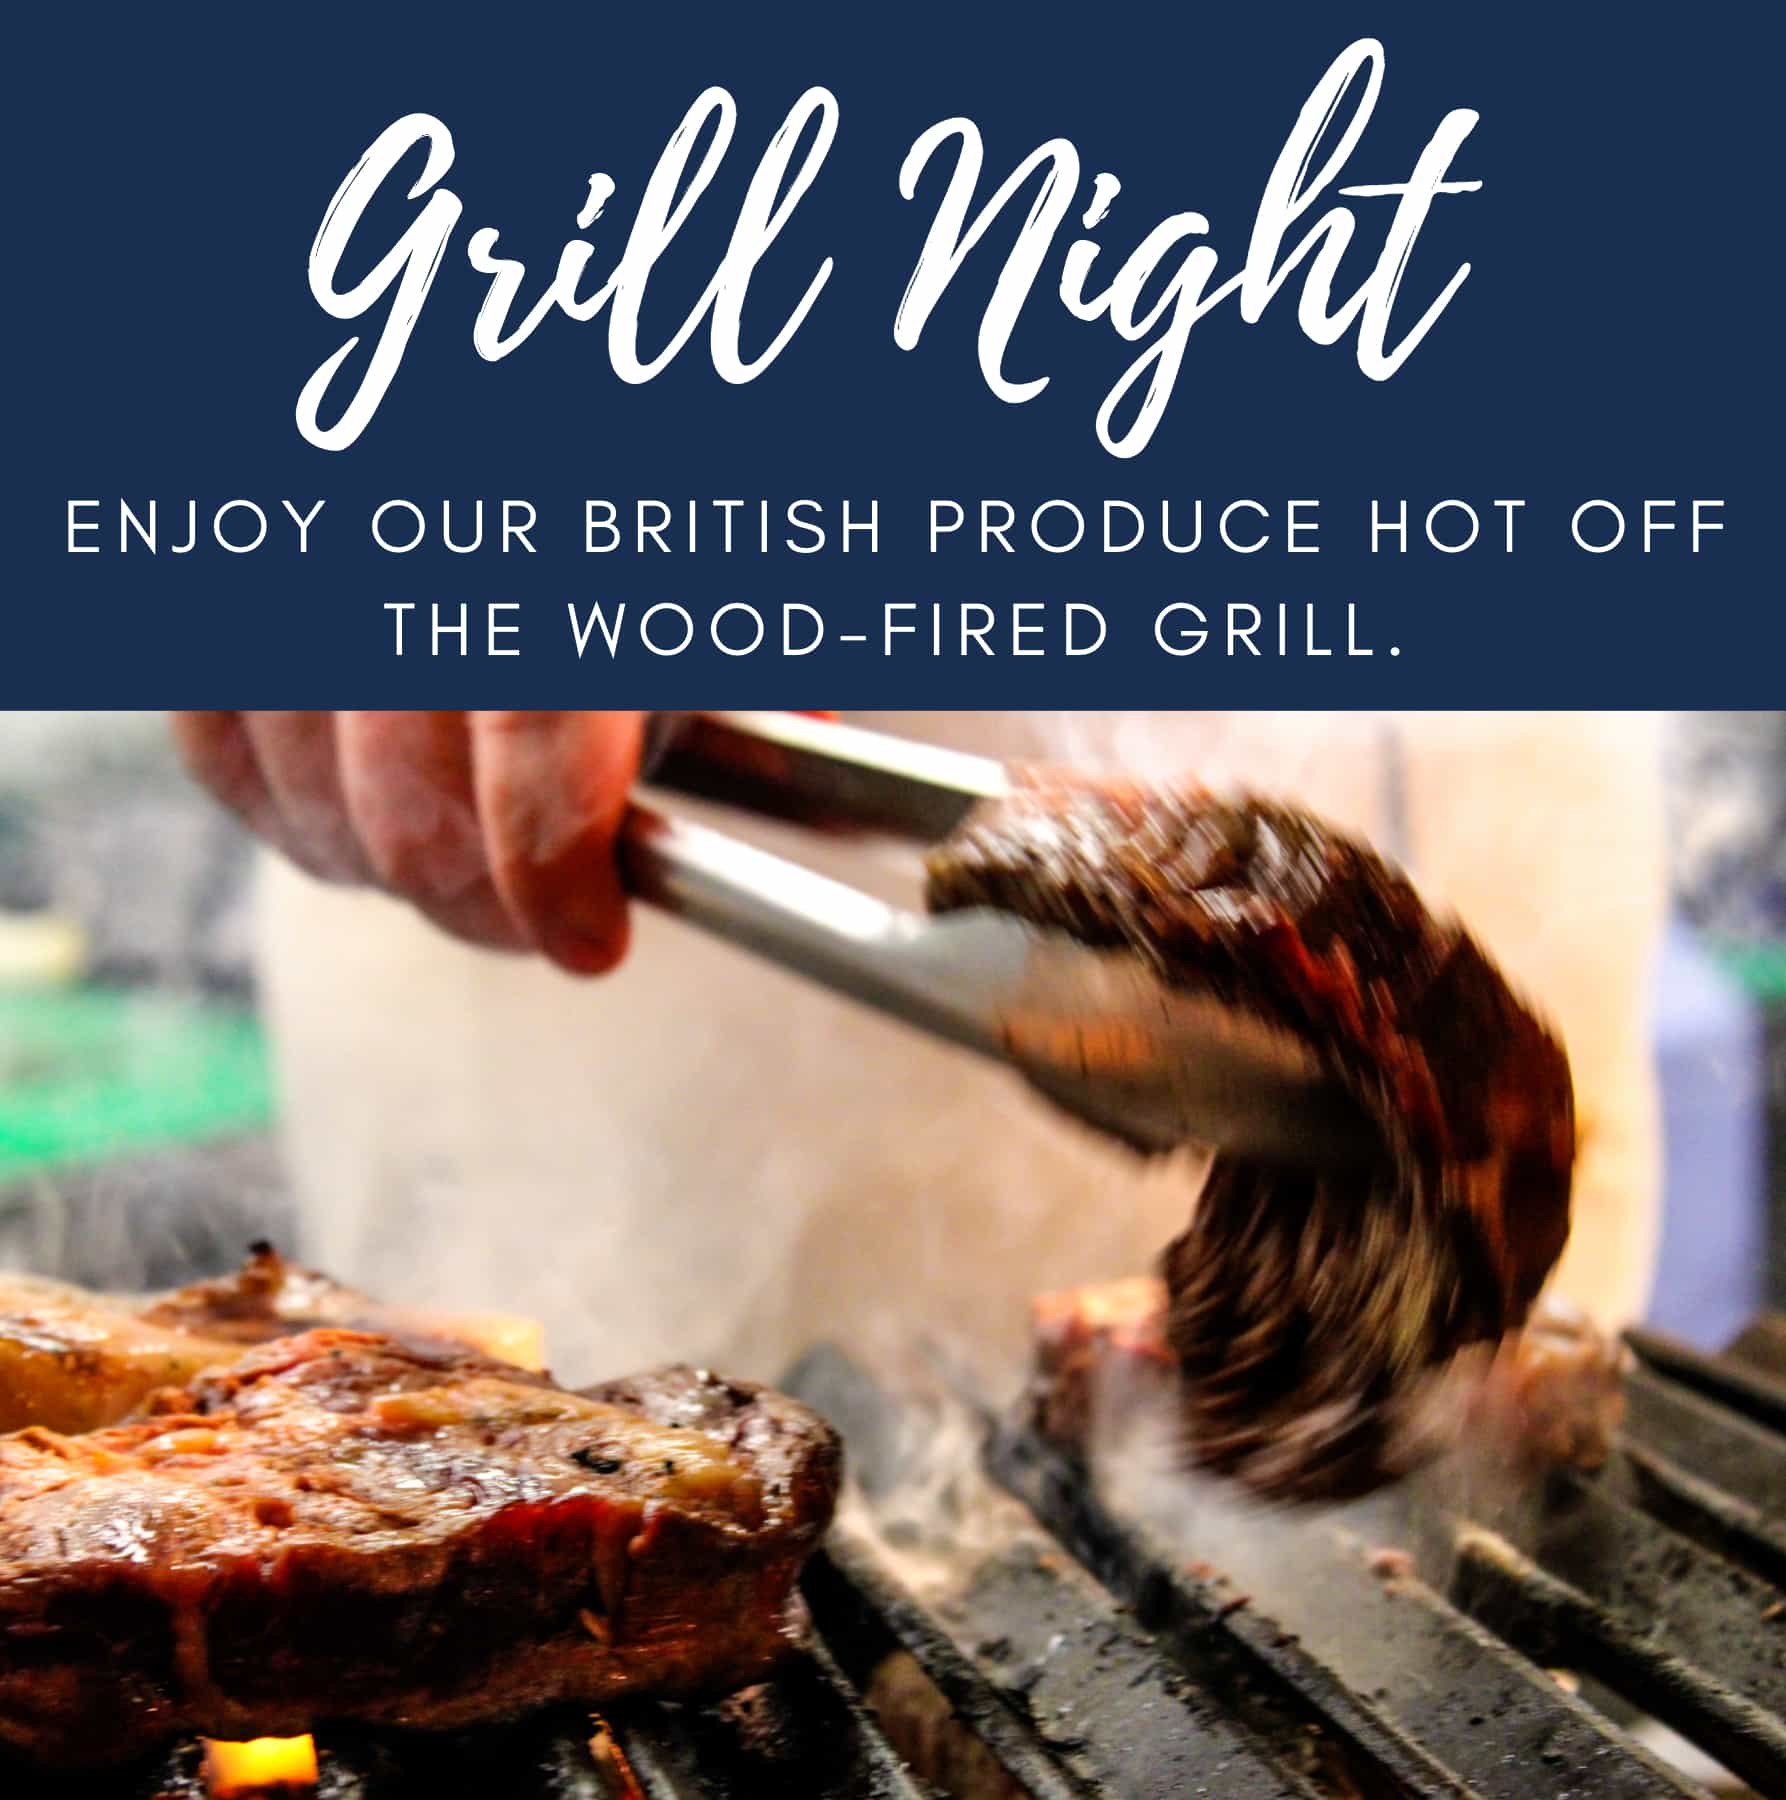 Wednesday Grill Night at Nutbourne